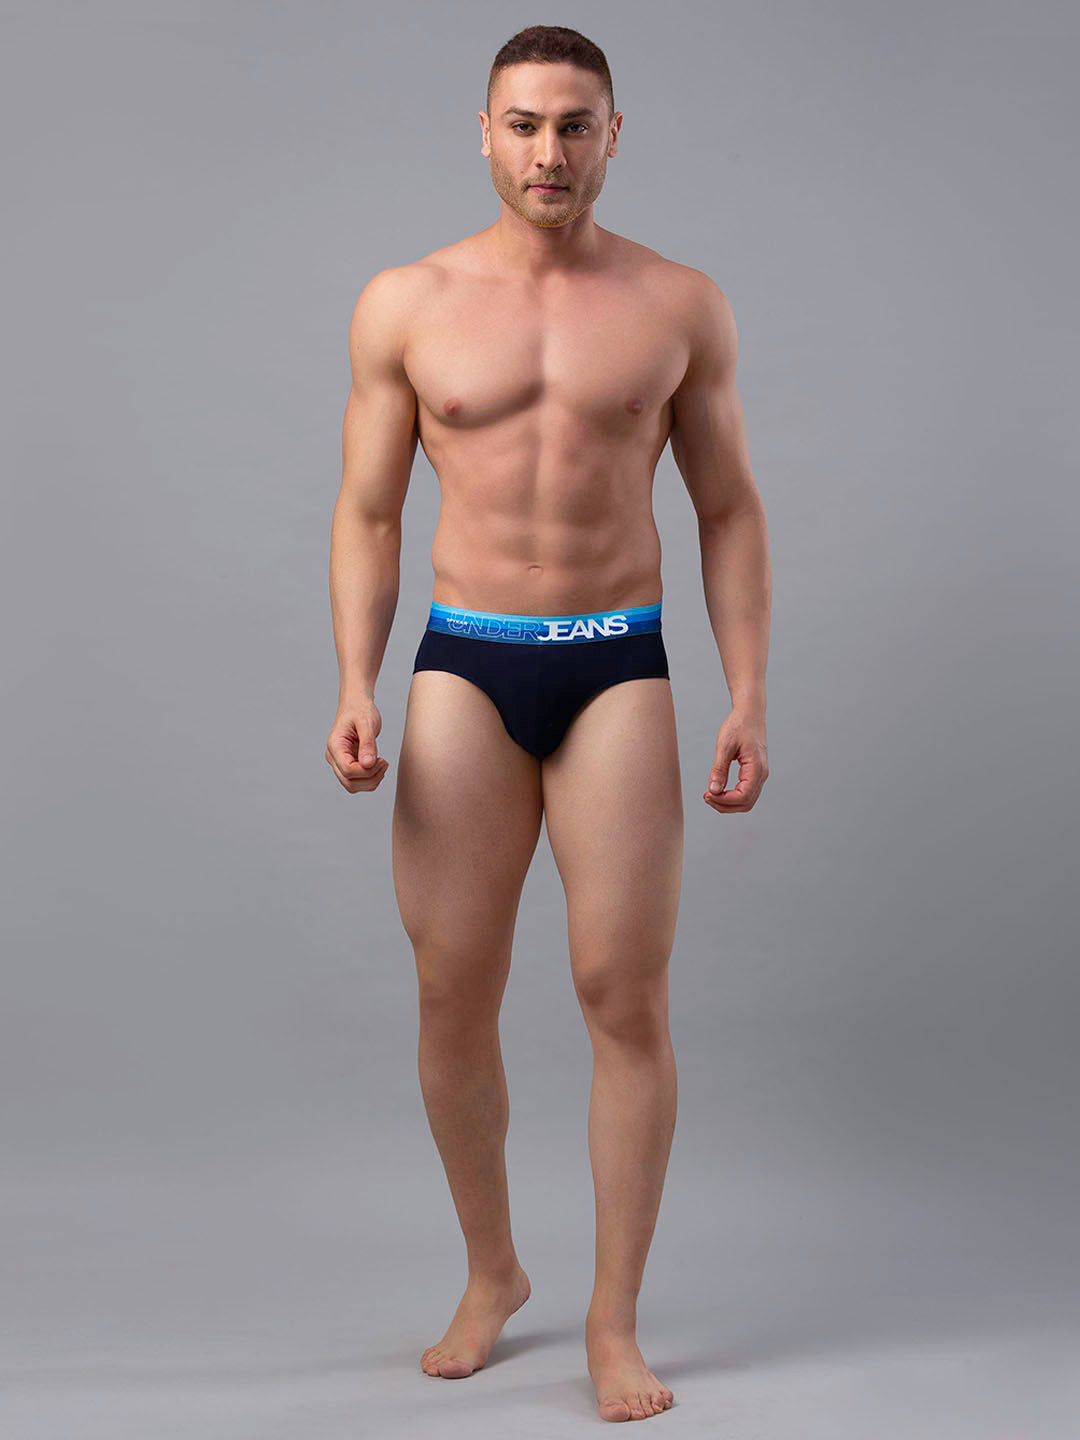 Underjeans Navy Cotton Brief - Pack of 2